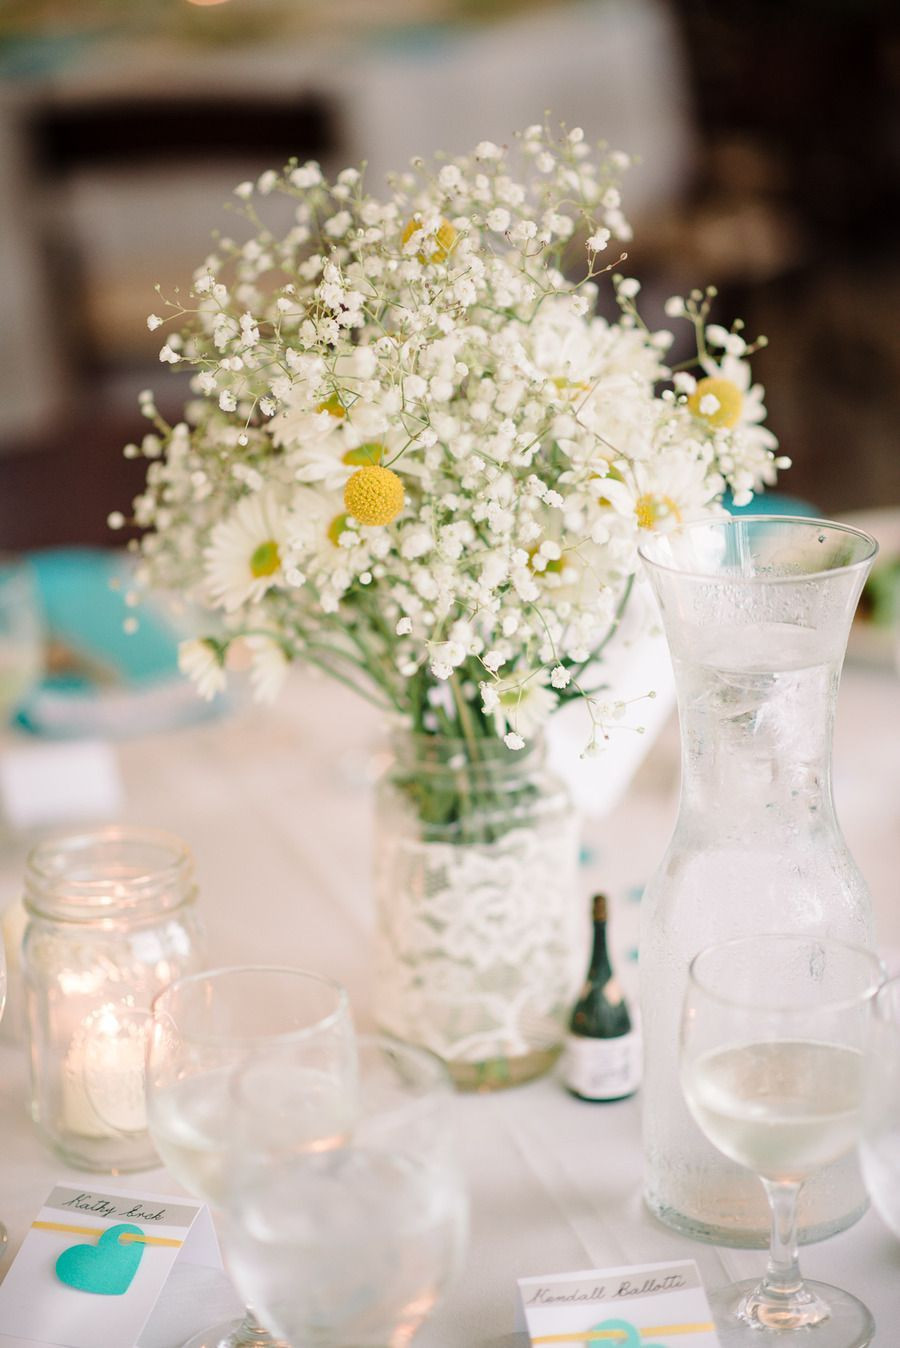 mason jar flower vase ideas of diy centerpiece ivory lace wrapped mason jar with diy daisy and throughout diy centerpiece ivory lace wrapped mason jar with diy daisy and billy ball floral arrangement